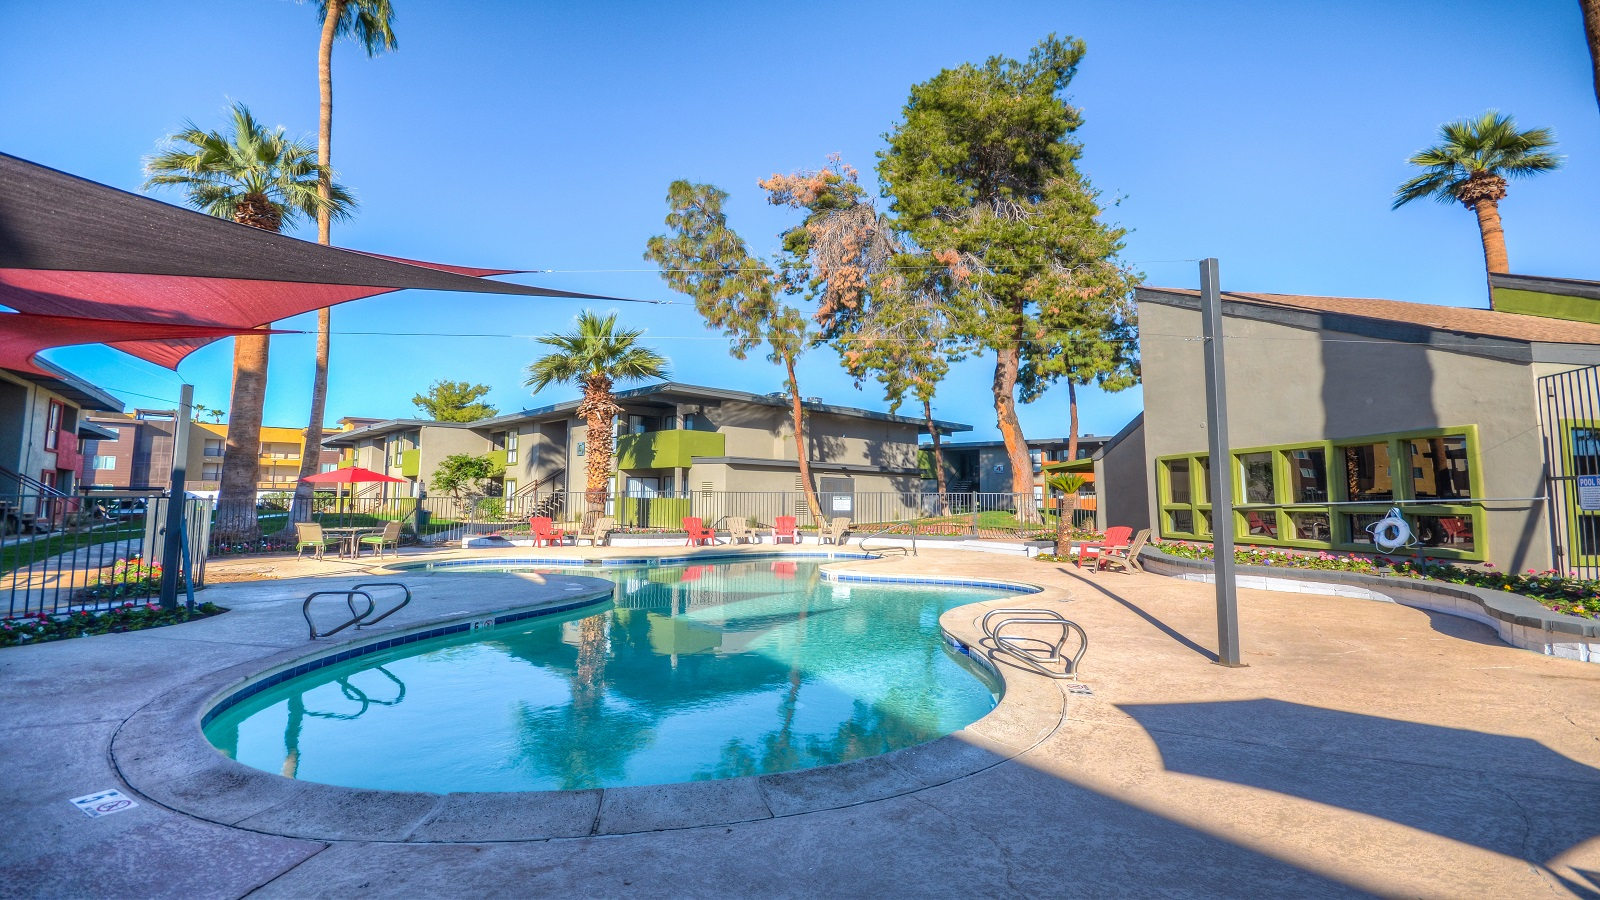 The Vue on Camelback | 4802 North 15th Avenue, Phoenix, AZ 85014 | 93 Units | Built in 1974, Renovated 2017/18 | $9,500,000 | $102,151 Per Unit | $162.42 Per SF